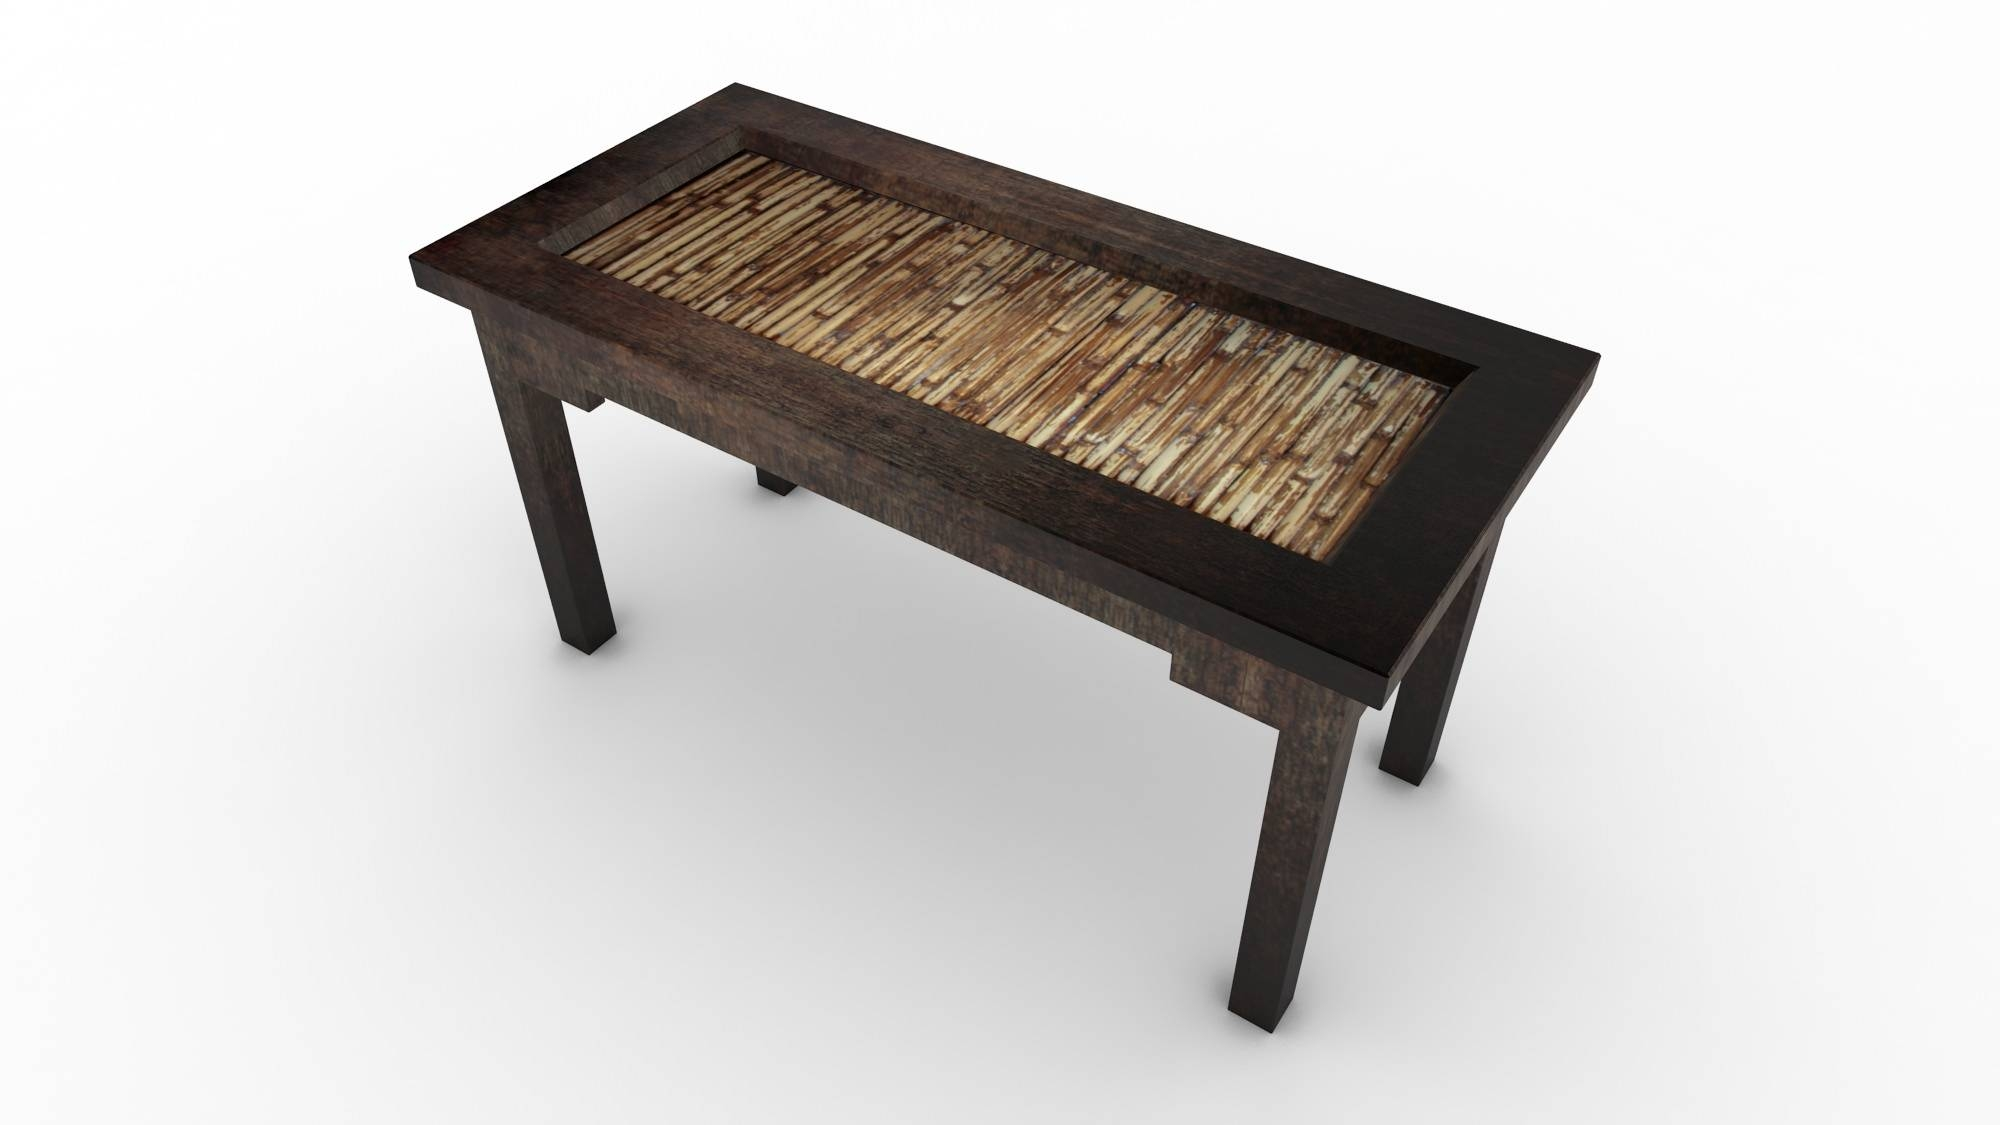 Ethnic Coffee Table Free 3D Model Max for Ethnic Coffee Tables (Image 10 of 30)